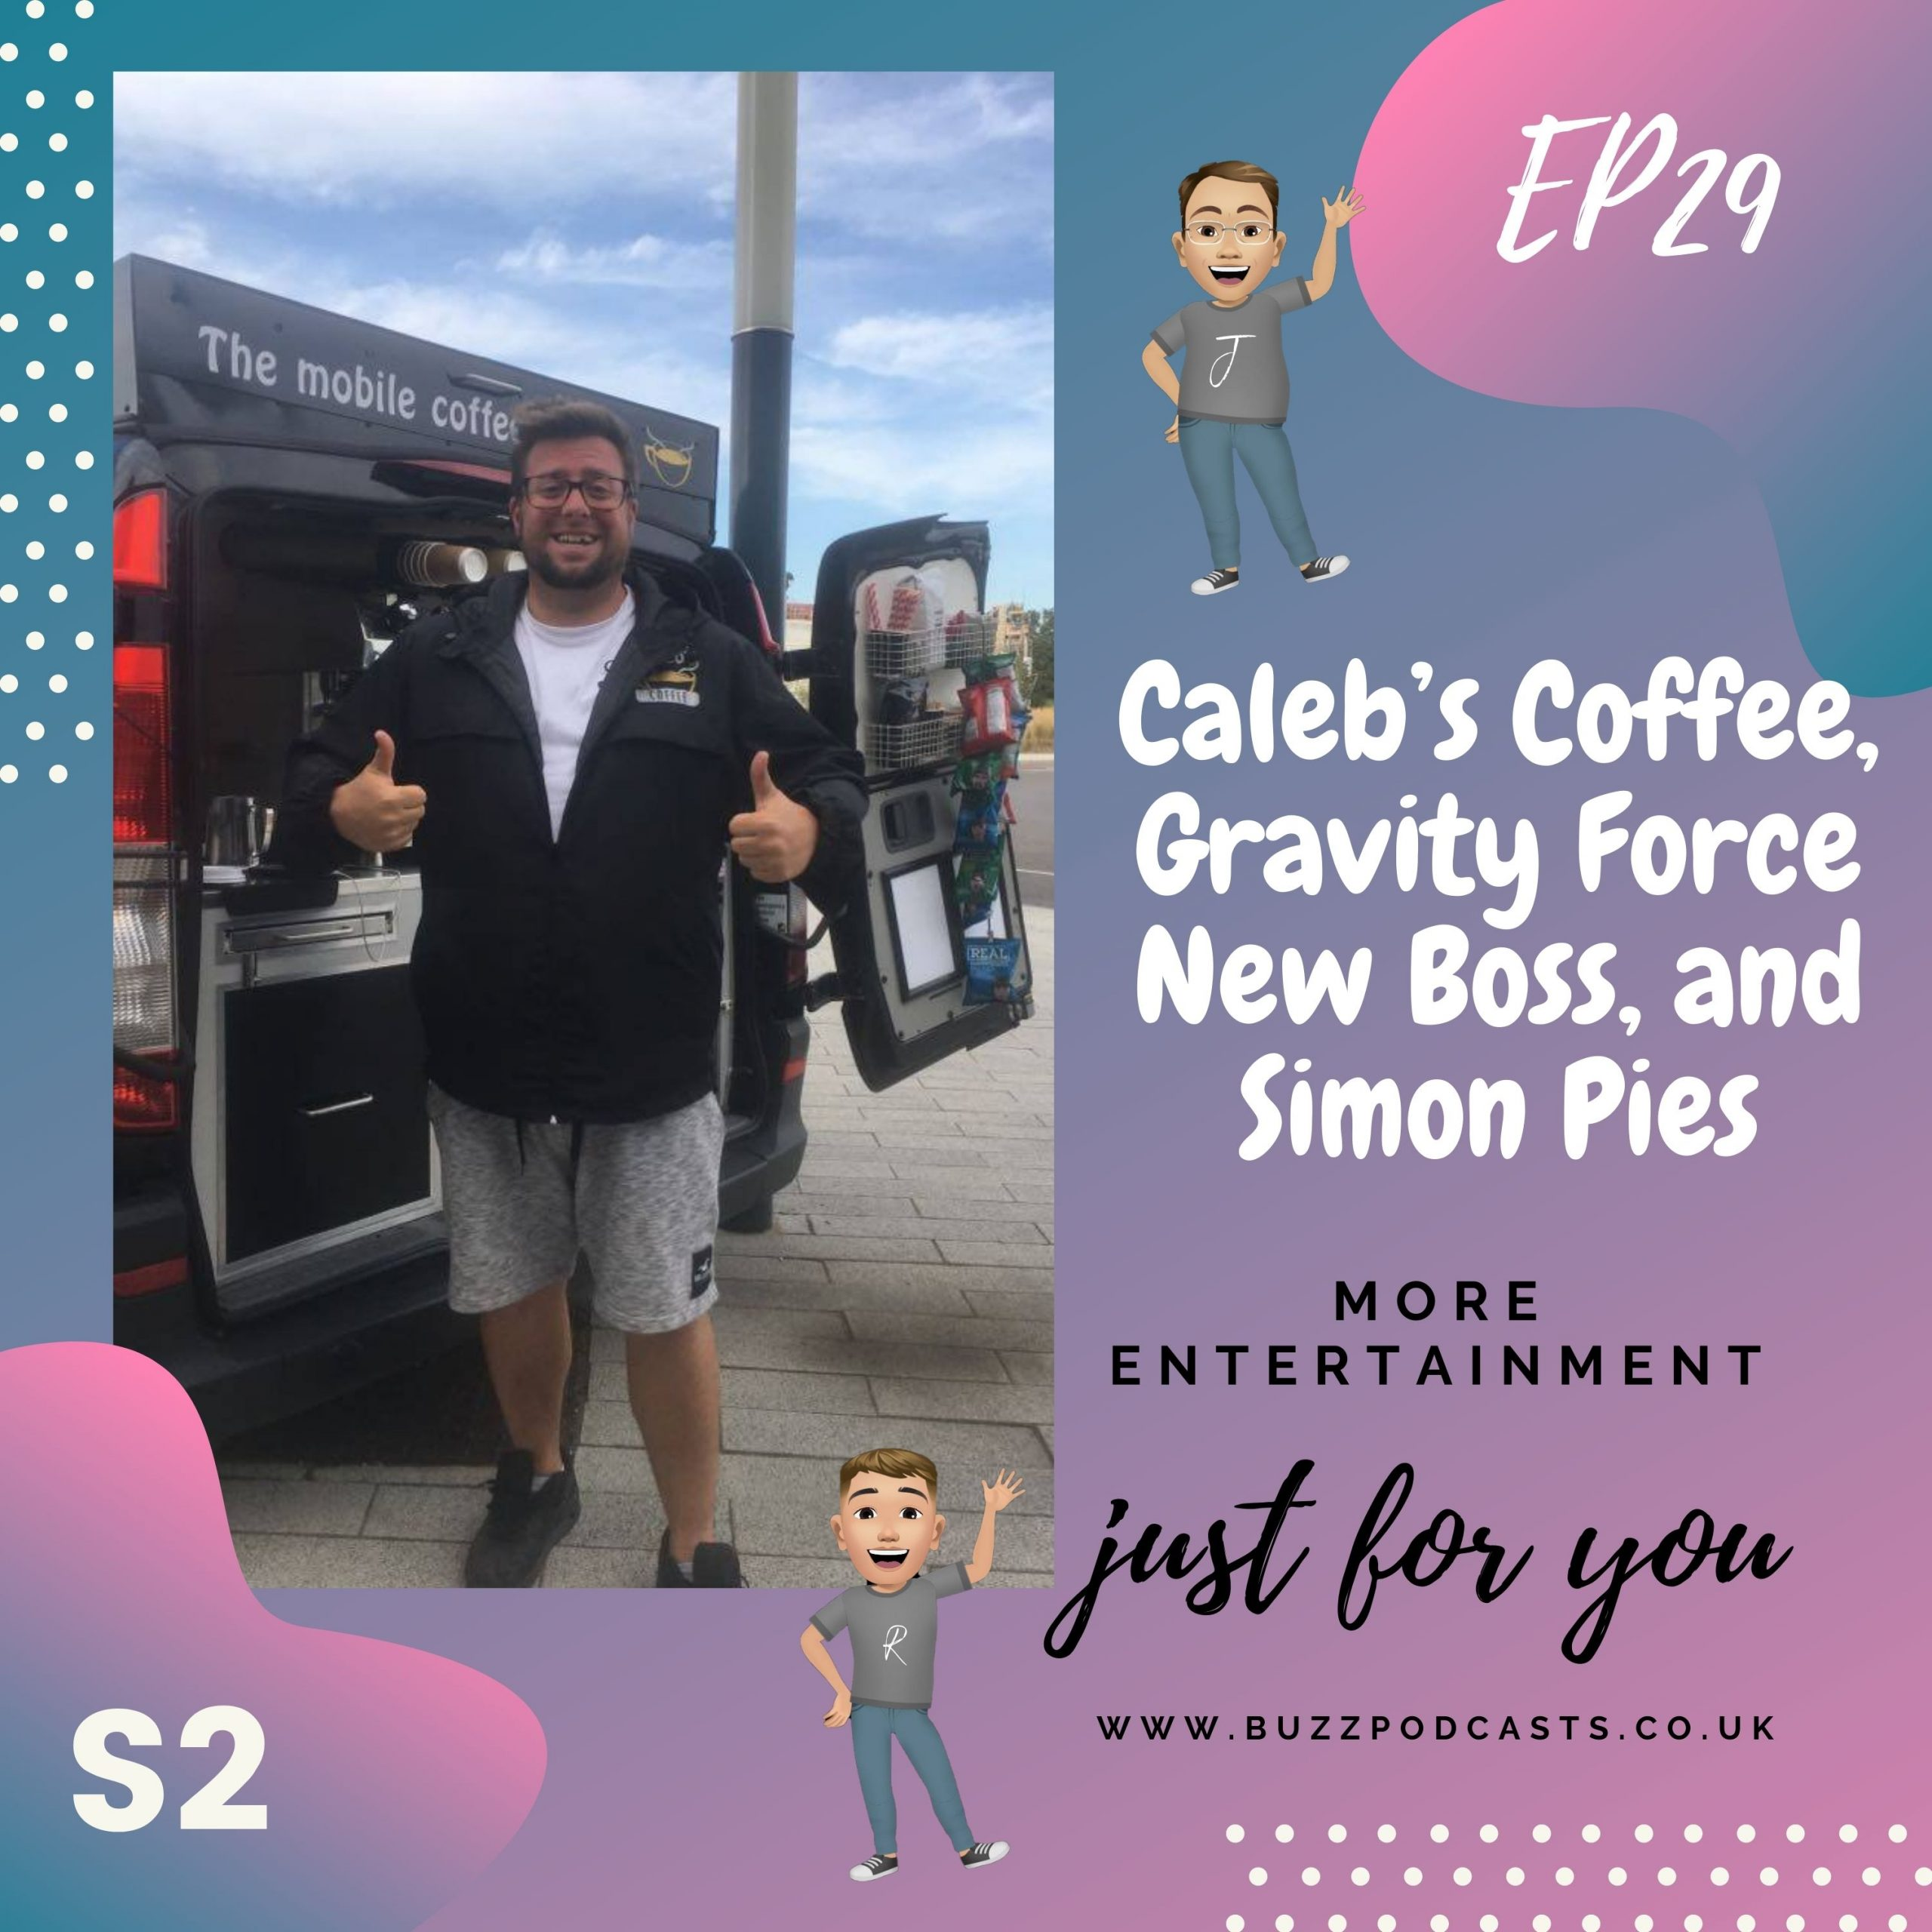 Caleb's Coffee, Gravity Force New Boss, and Simon Pies